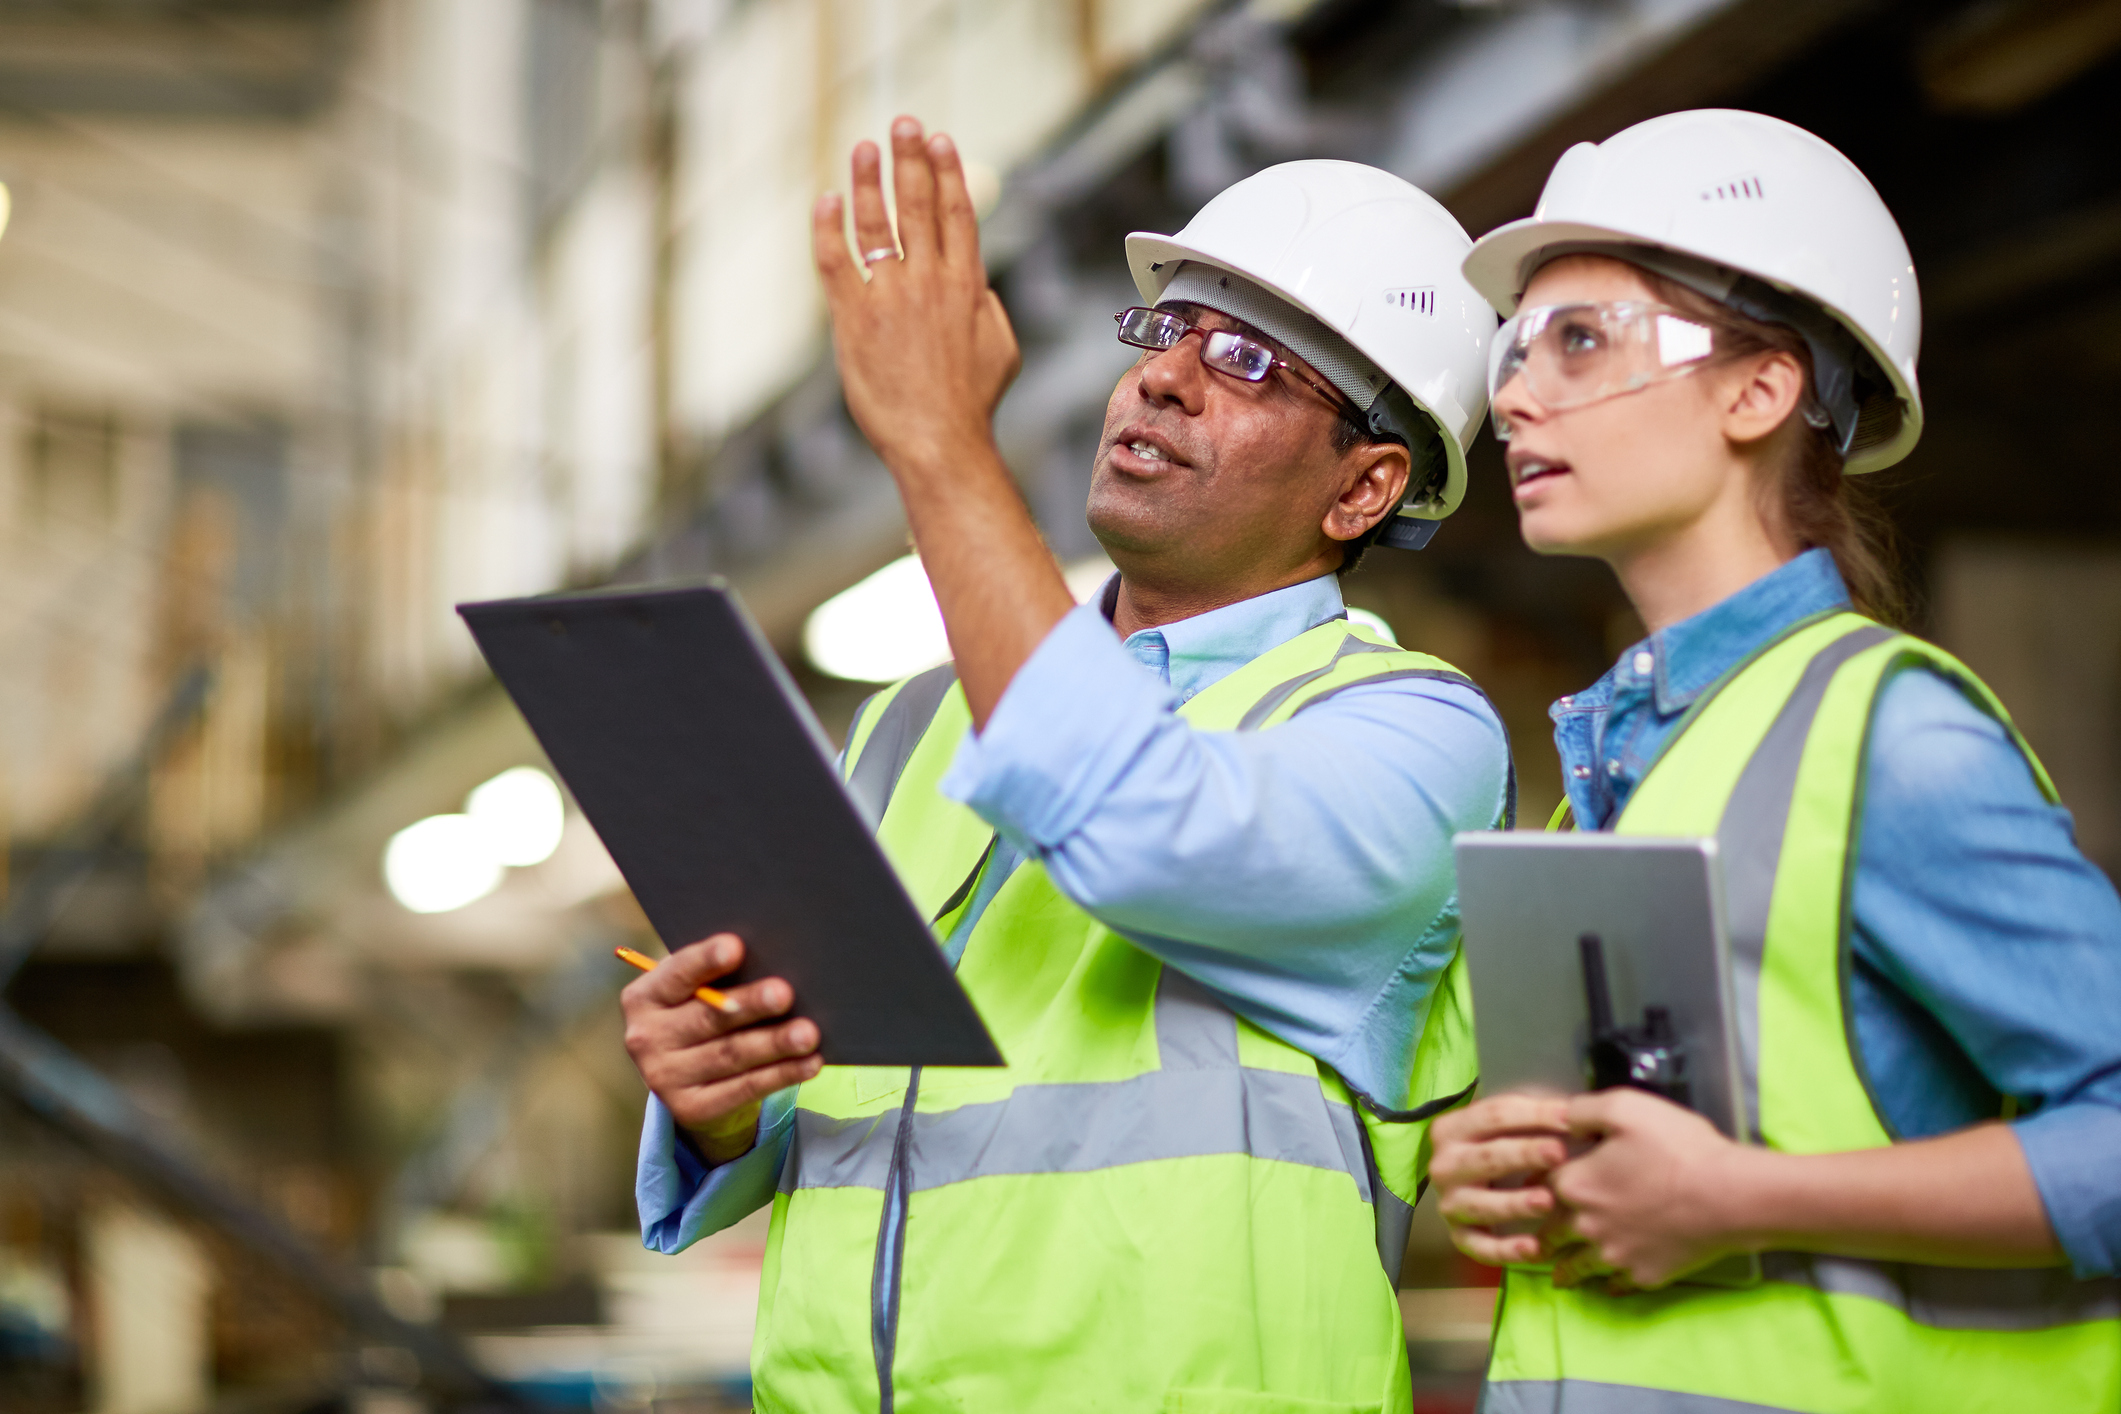 Image: iStock - Male engineer showing the project to his colleague.